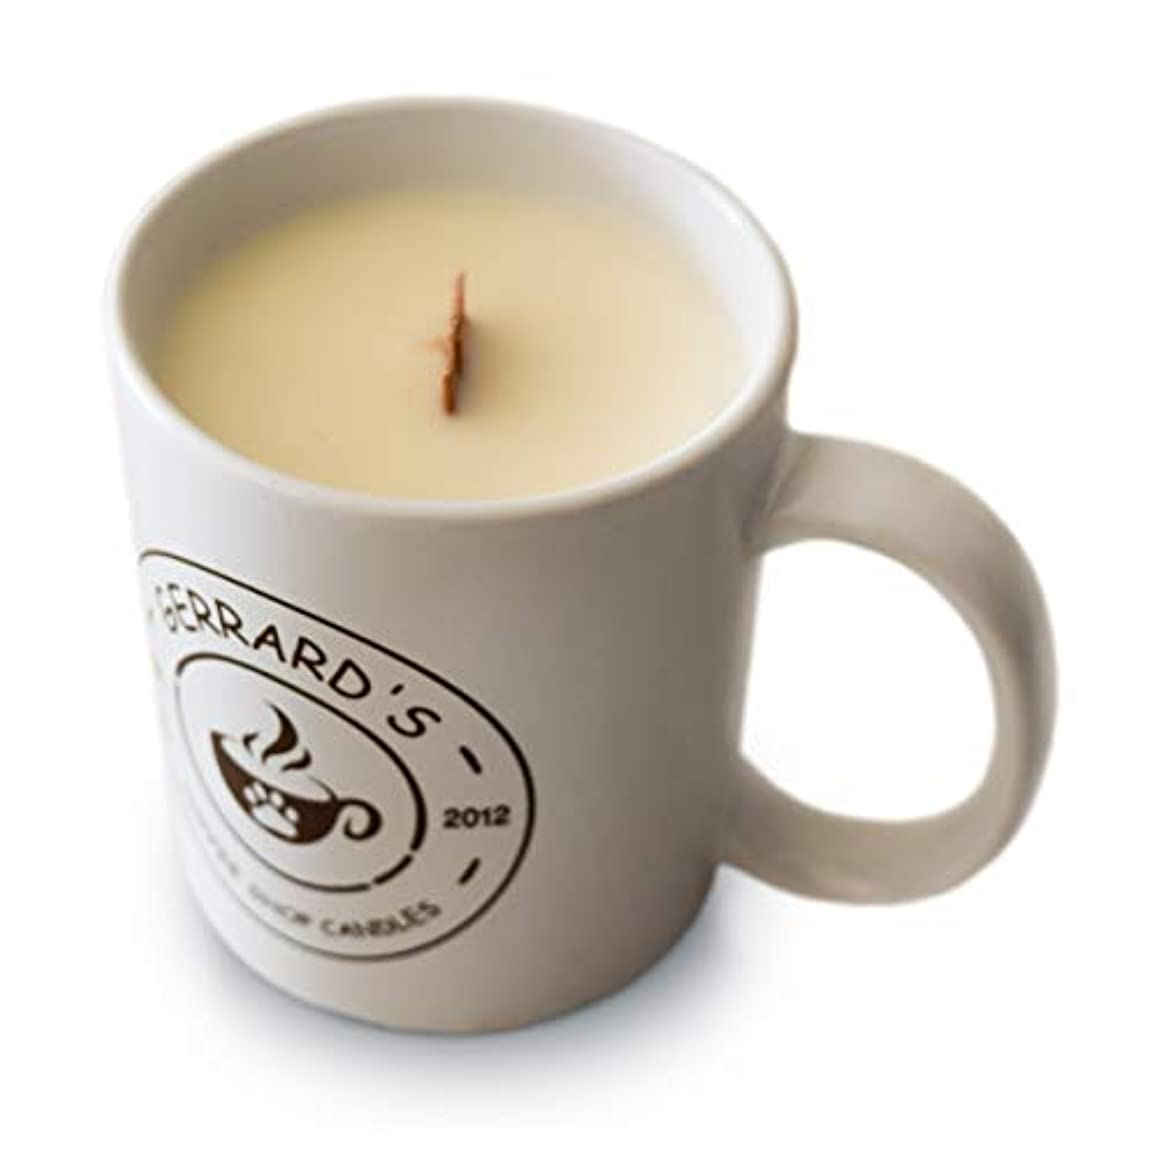 Gerrard's Coffee Shop Candles - Scented Soy Candle with Gift Box, 10 Ounce - Handmade in The USA (Spiced Chai Tea Latte)